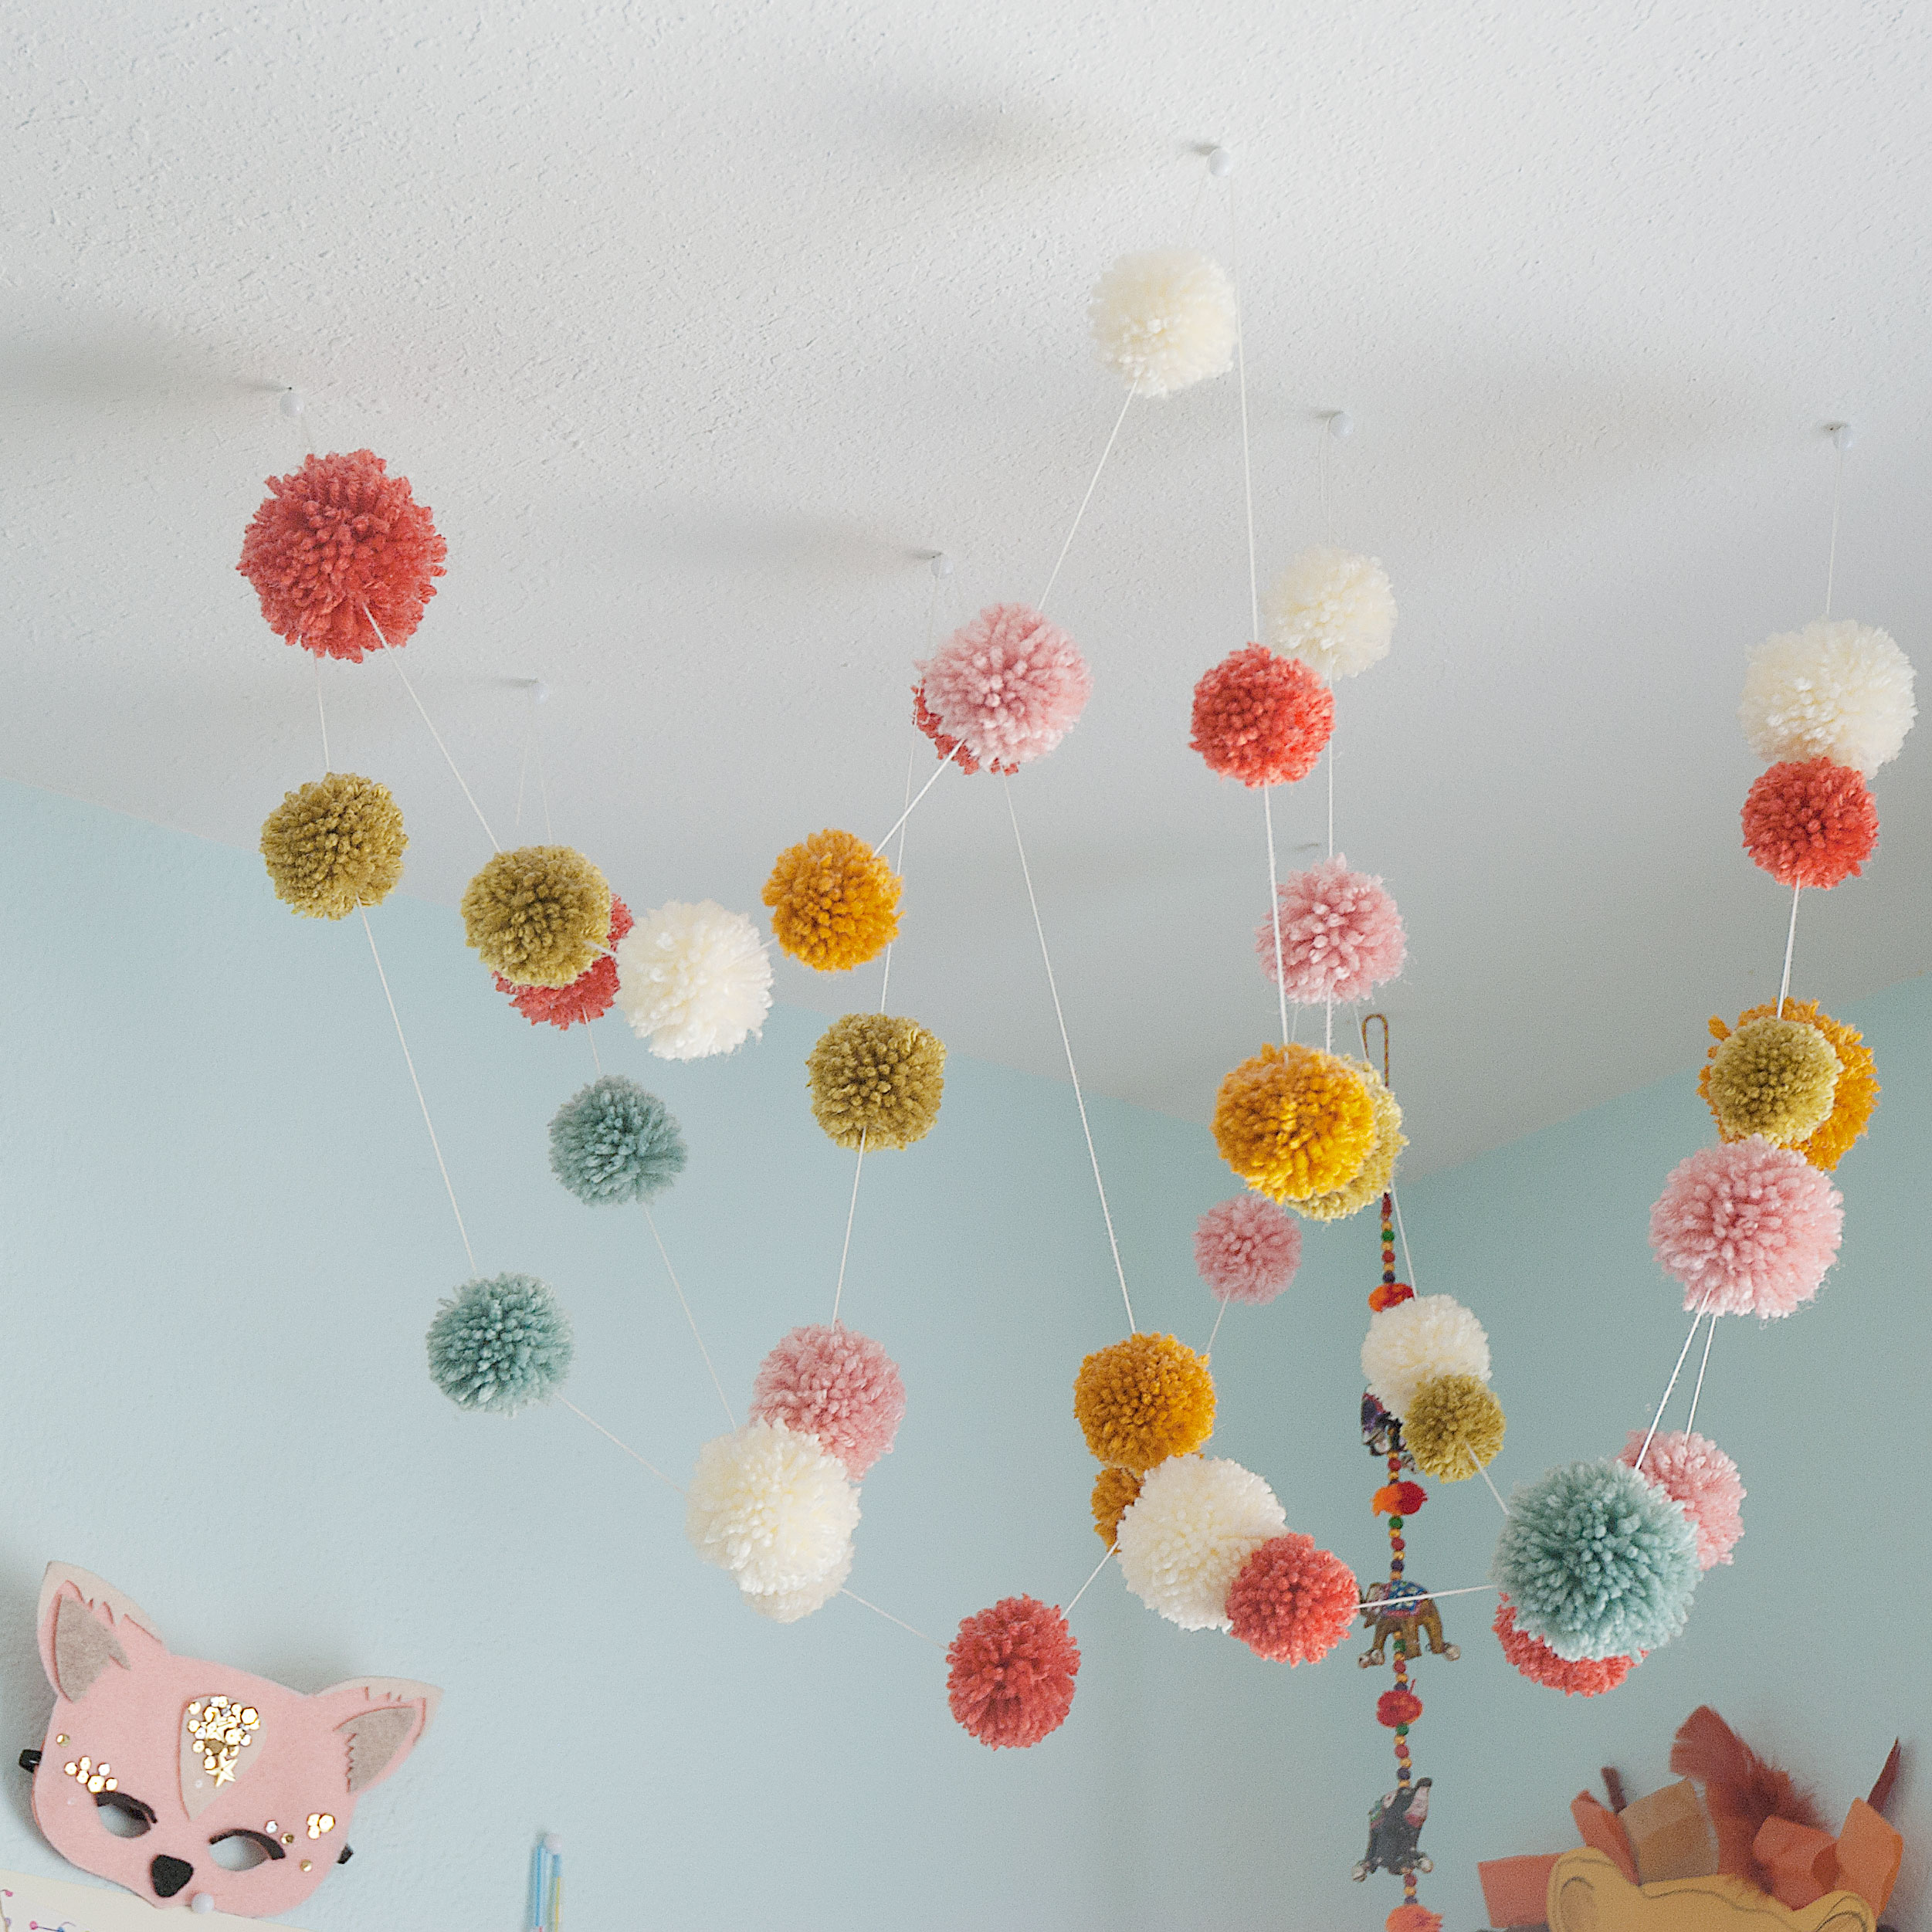 Pom pom garland ceiling affair 18 feet for Hanging pom poms from ceiling